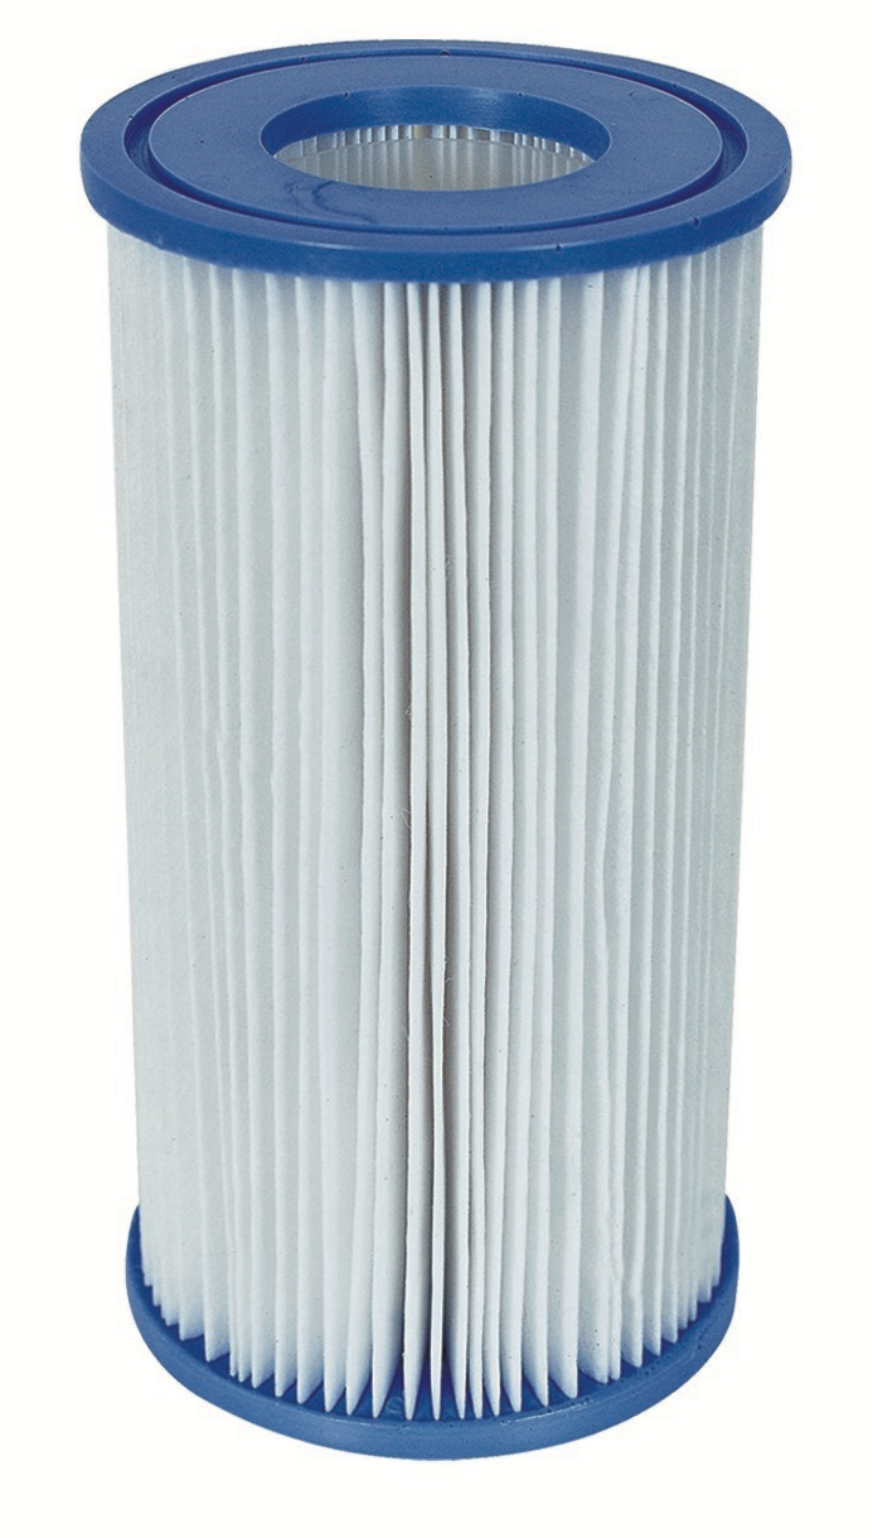 Afbeelding van Bestway filter cartridge type 3 (III)